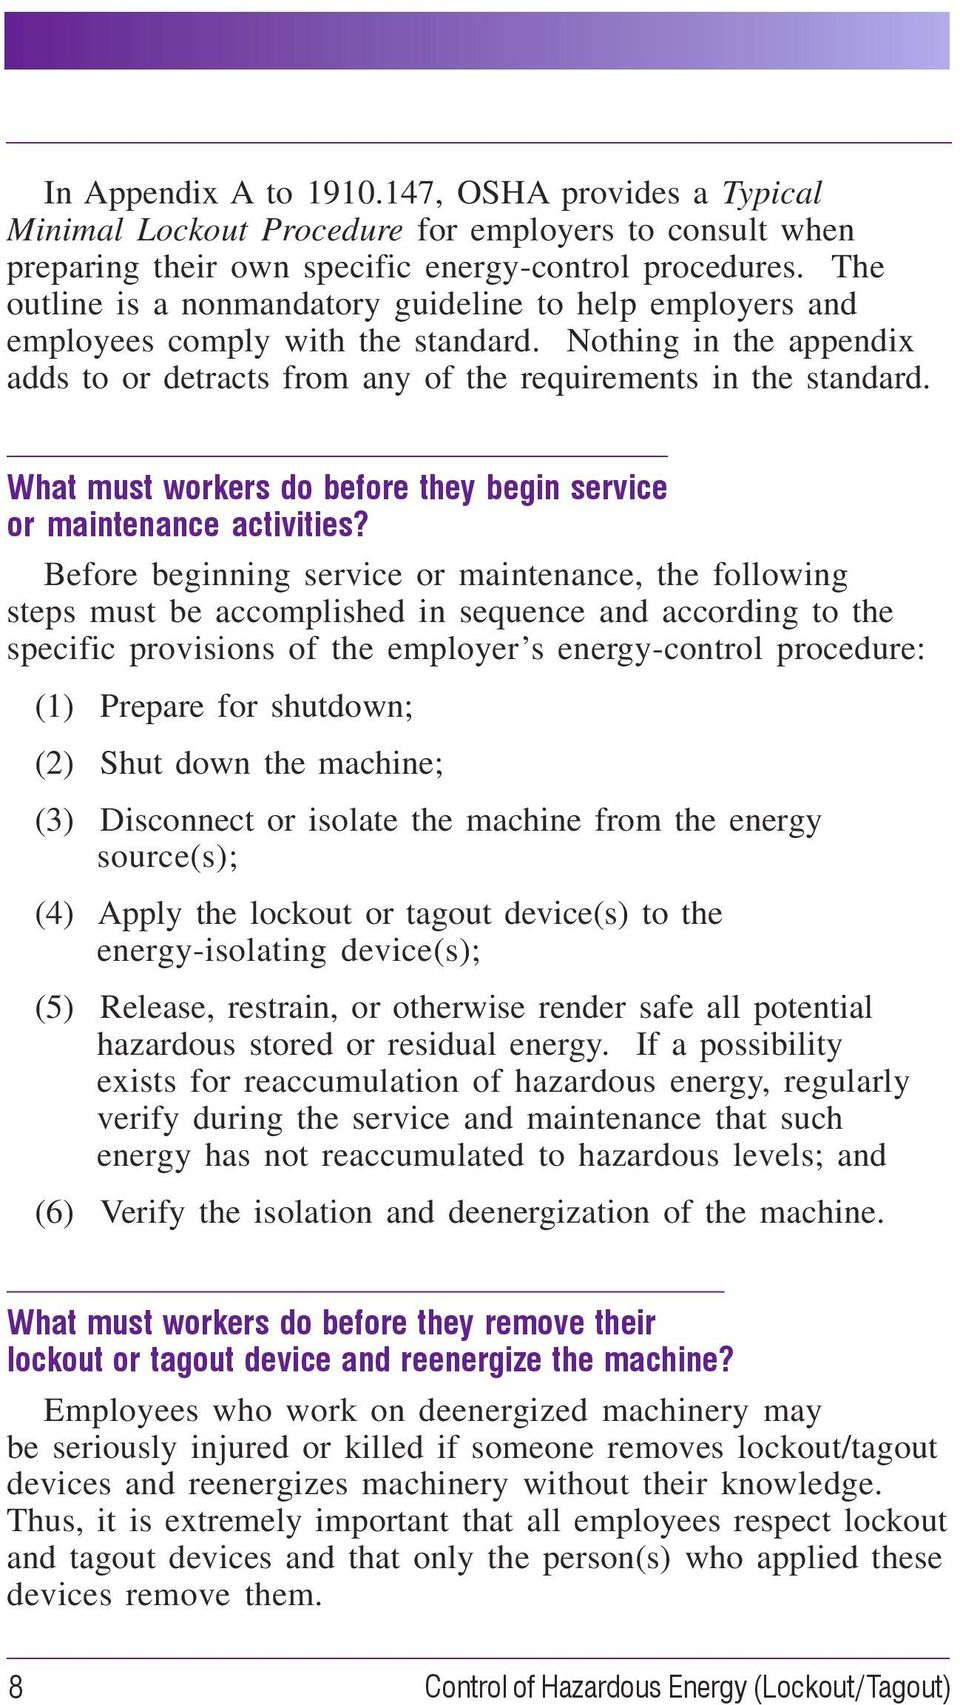 What must workers do before they begin service or maintenance activities?